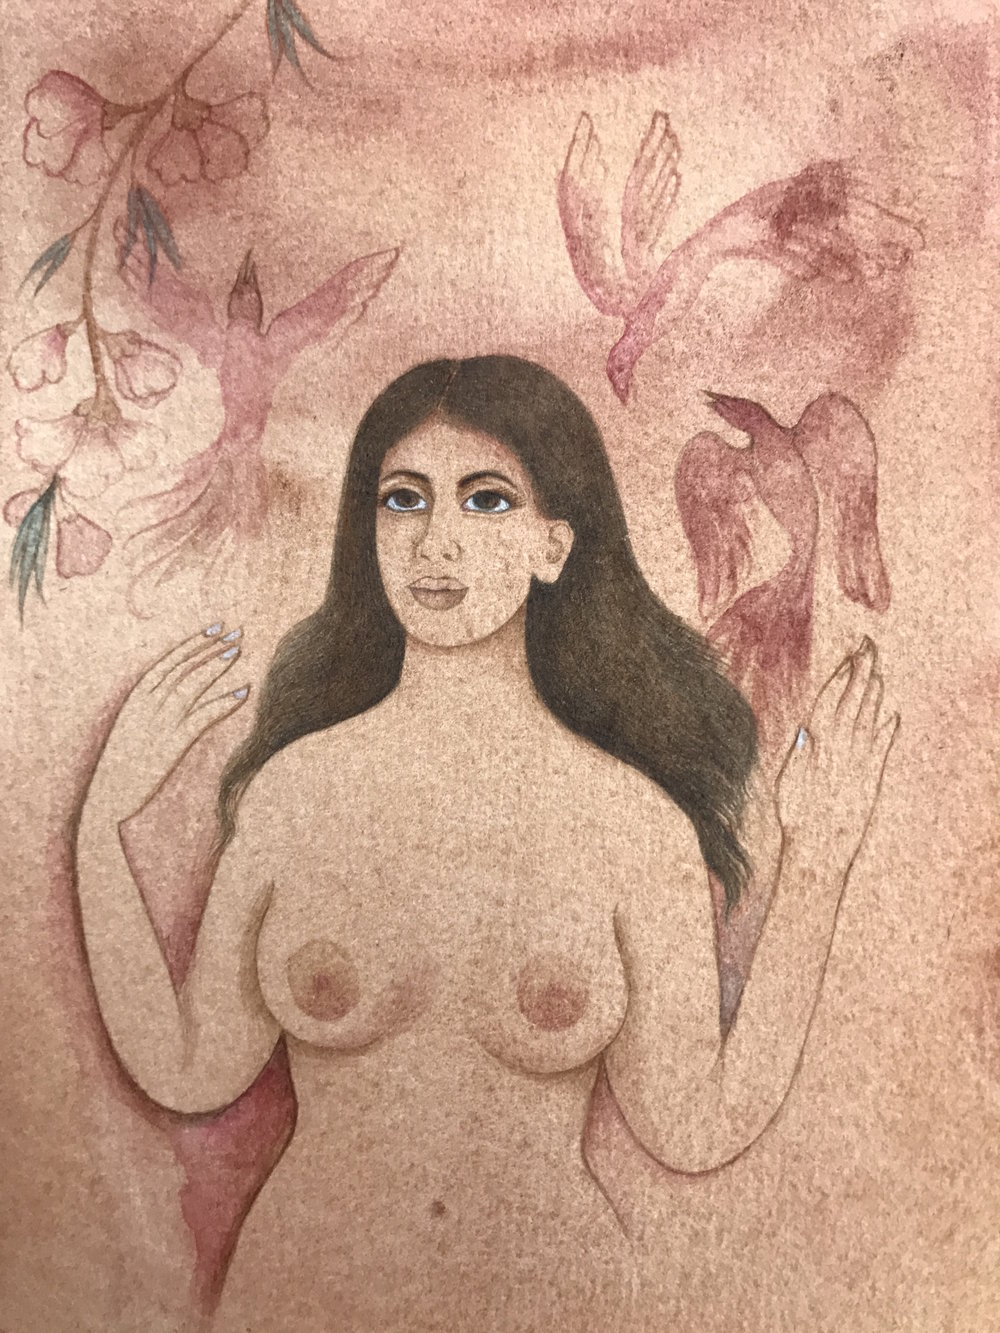 Self Portrait As Eve Naming The Birds (after Blake) watercolor and tea on paper 6 x 4 inches 2017